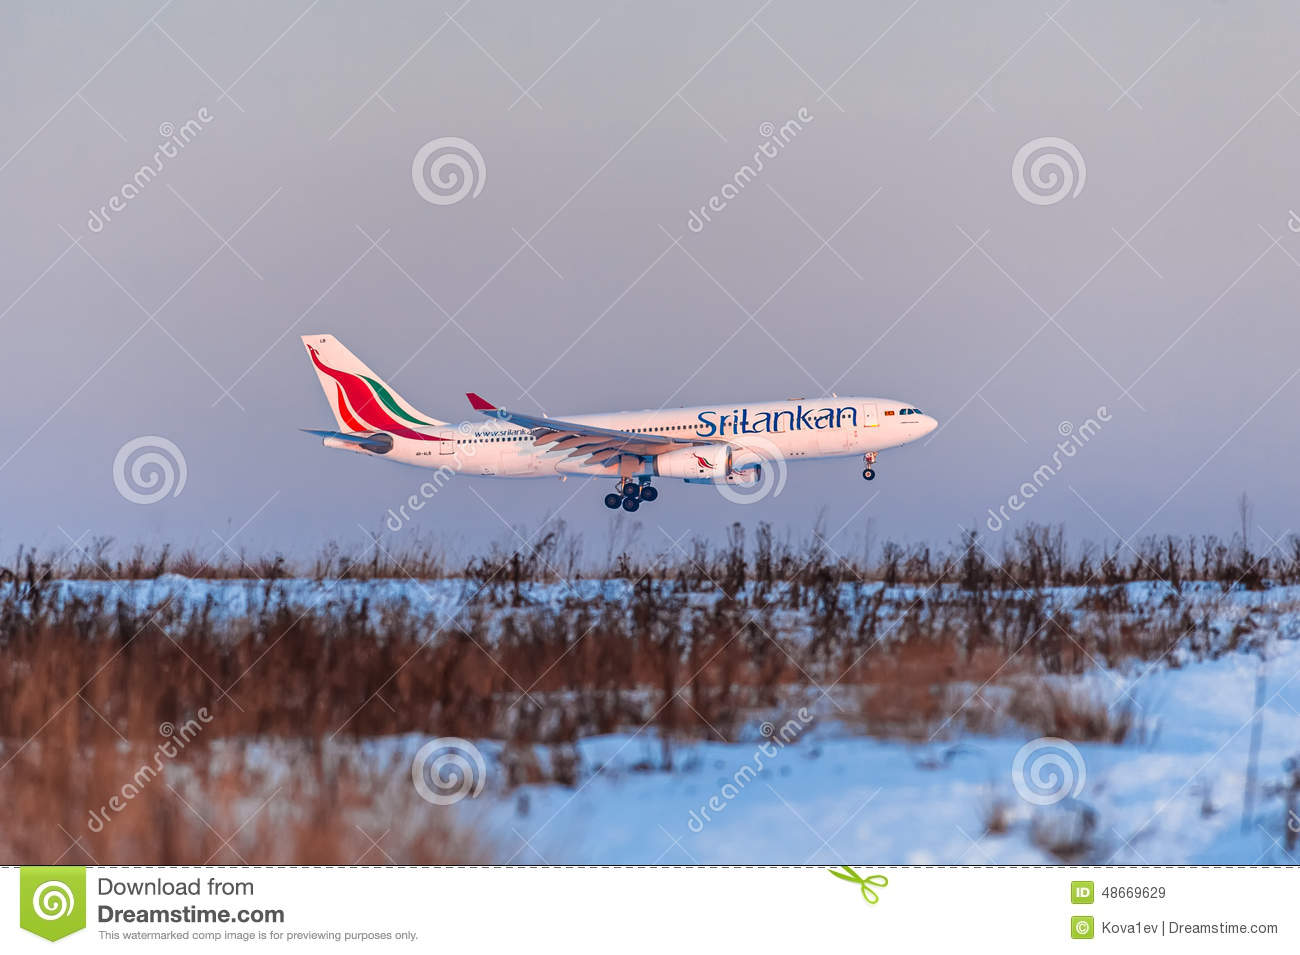 Airbus a330 SriLankan Airlines